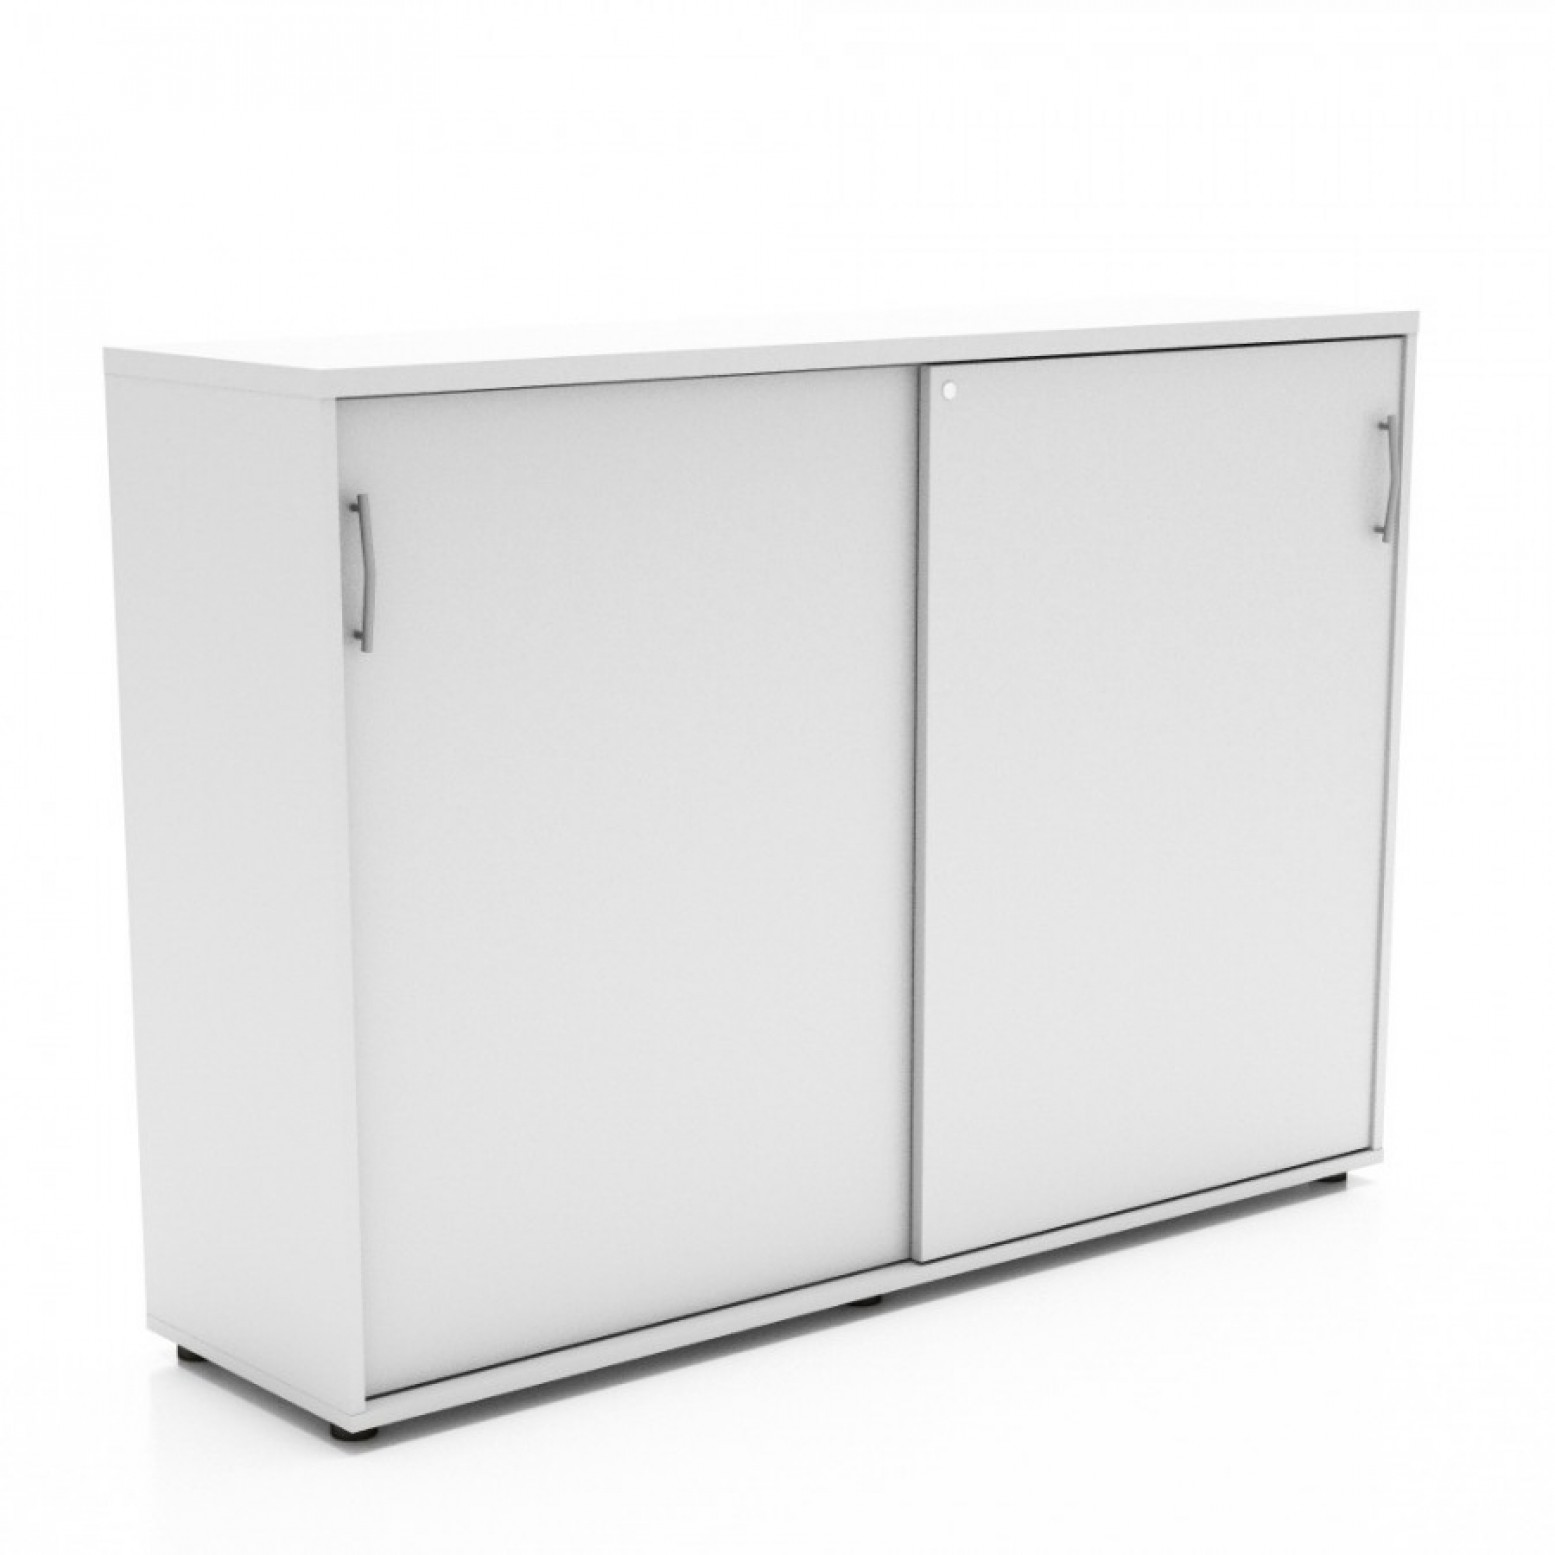 Picture of: Standard 3oh Medium Office Storage Cabinet W 2 Sliding Doors By Mdd Office Furniture Sohomod Com